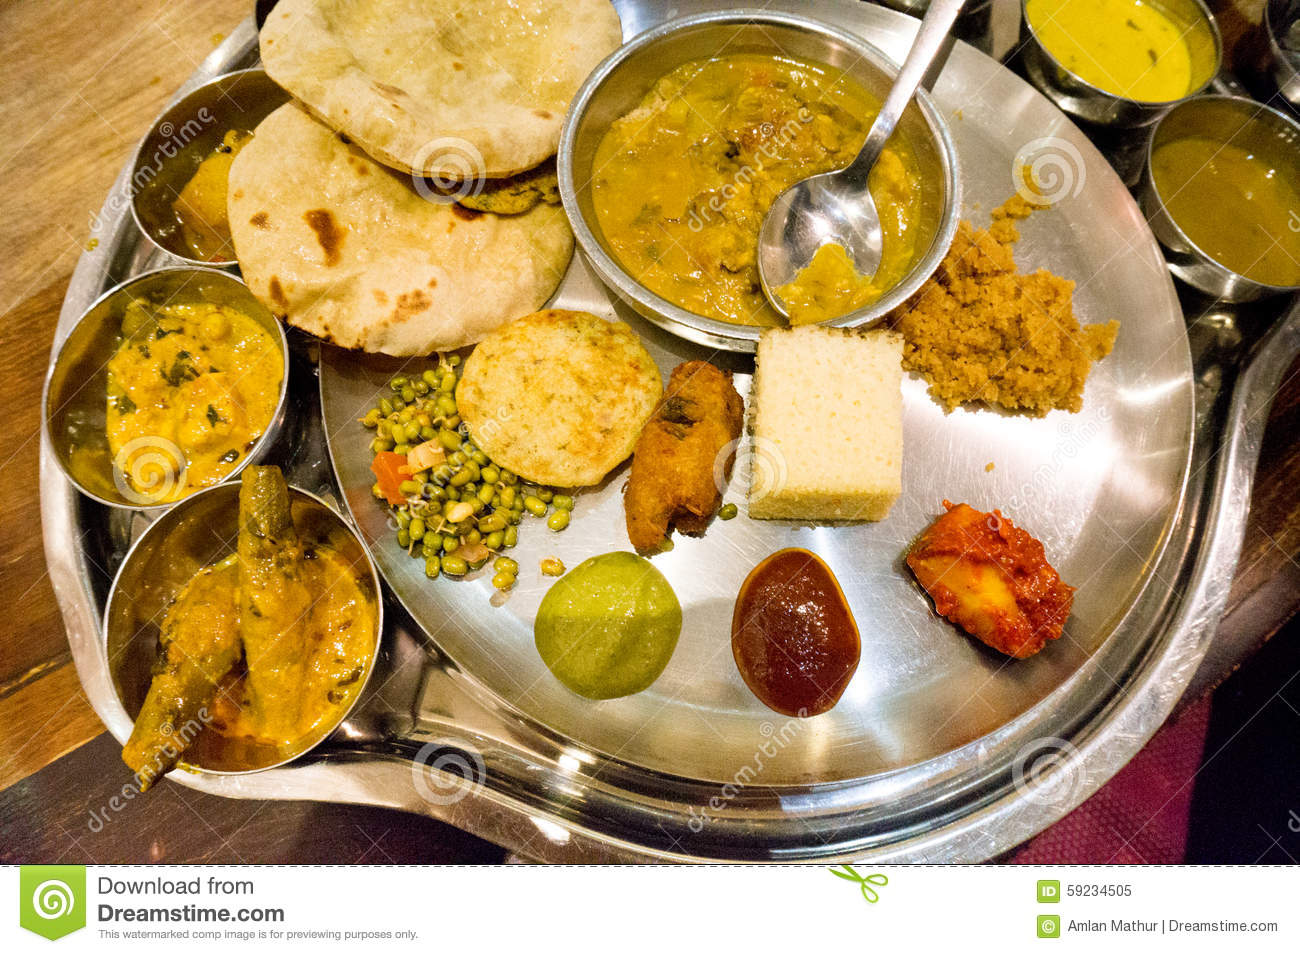 North indian cuisine stock photo image 59234505 for Abhiruchi south north indian cuisine